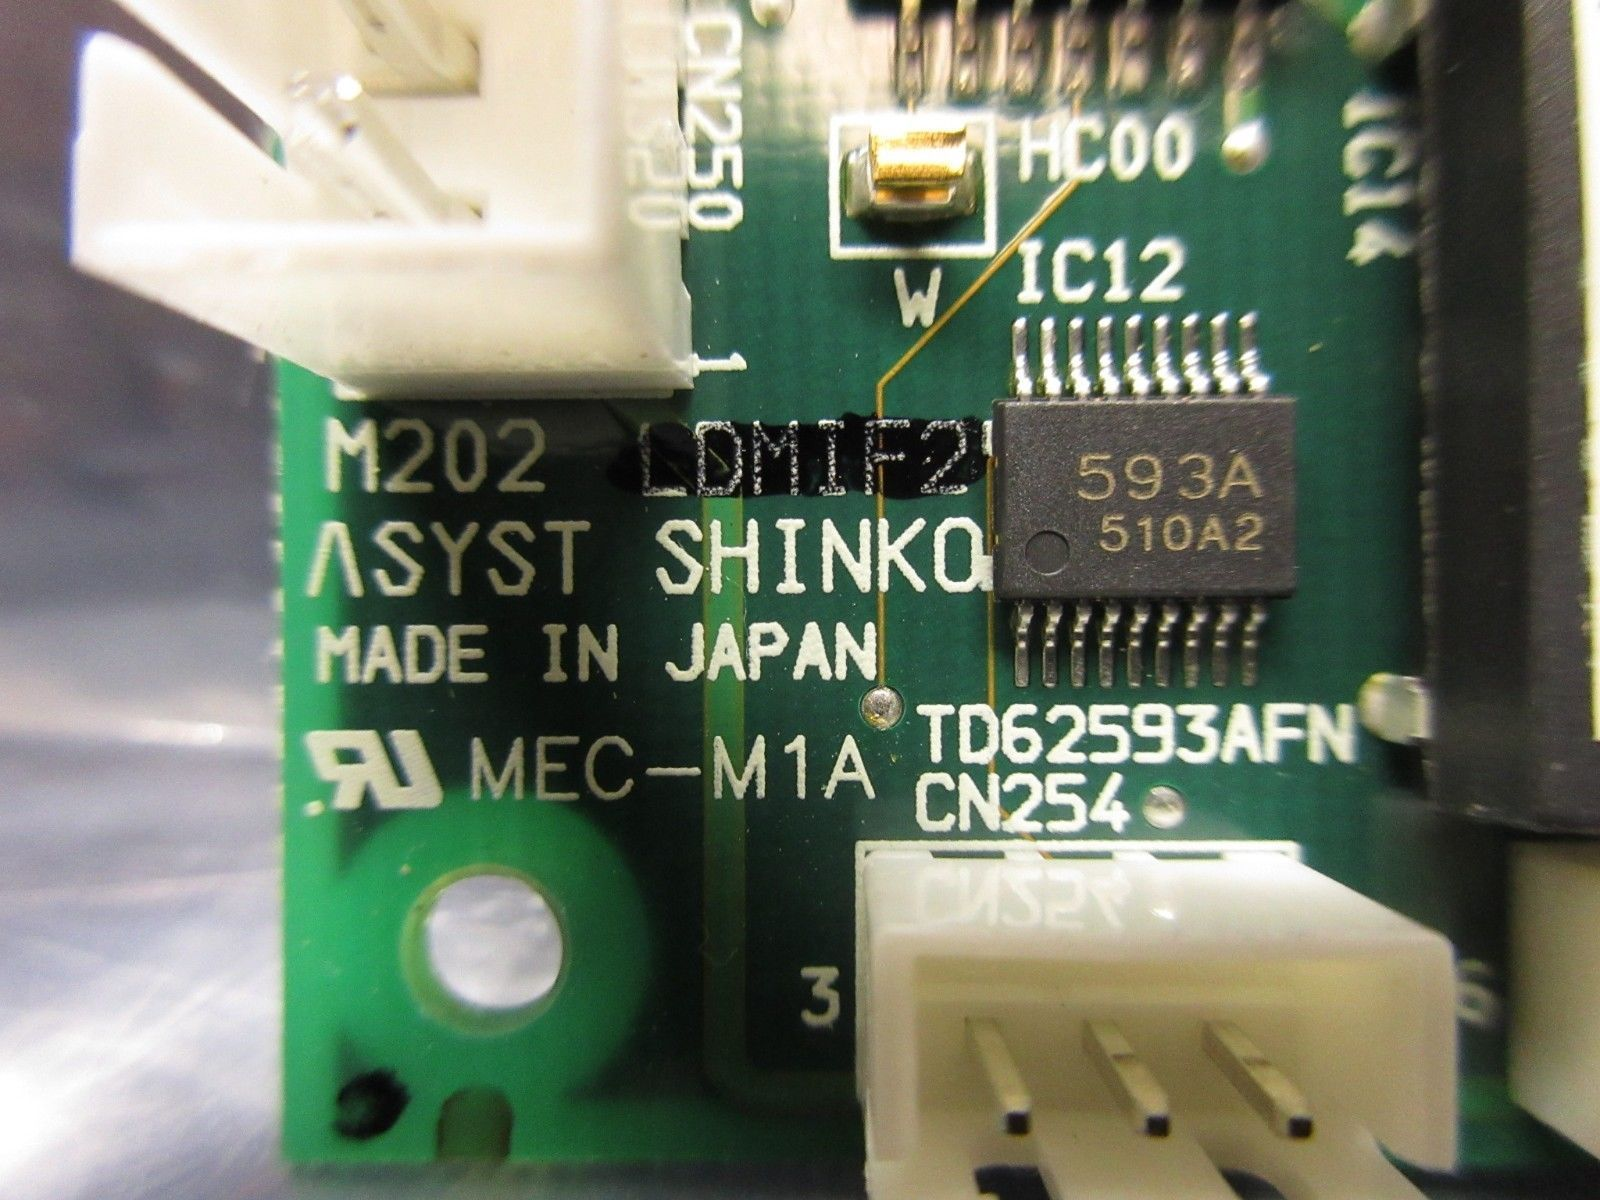 Asyst Shinko HASSYC810601 Processor Board PCB LDMIF2A M202 Used Working